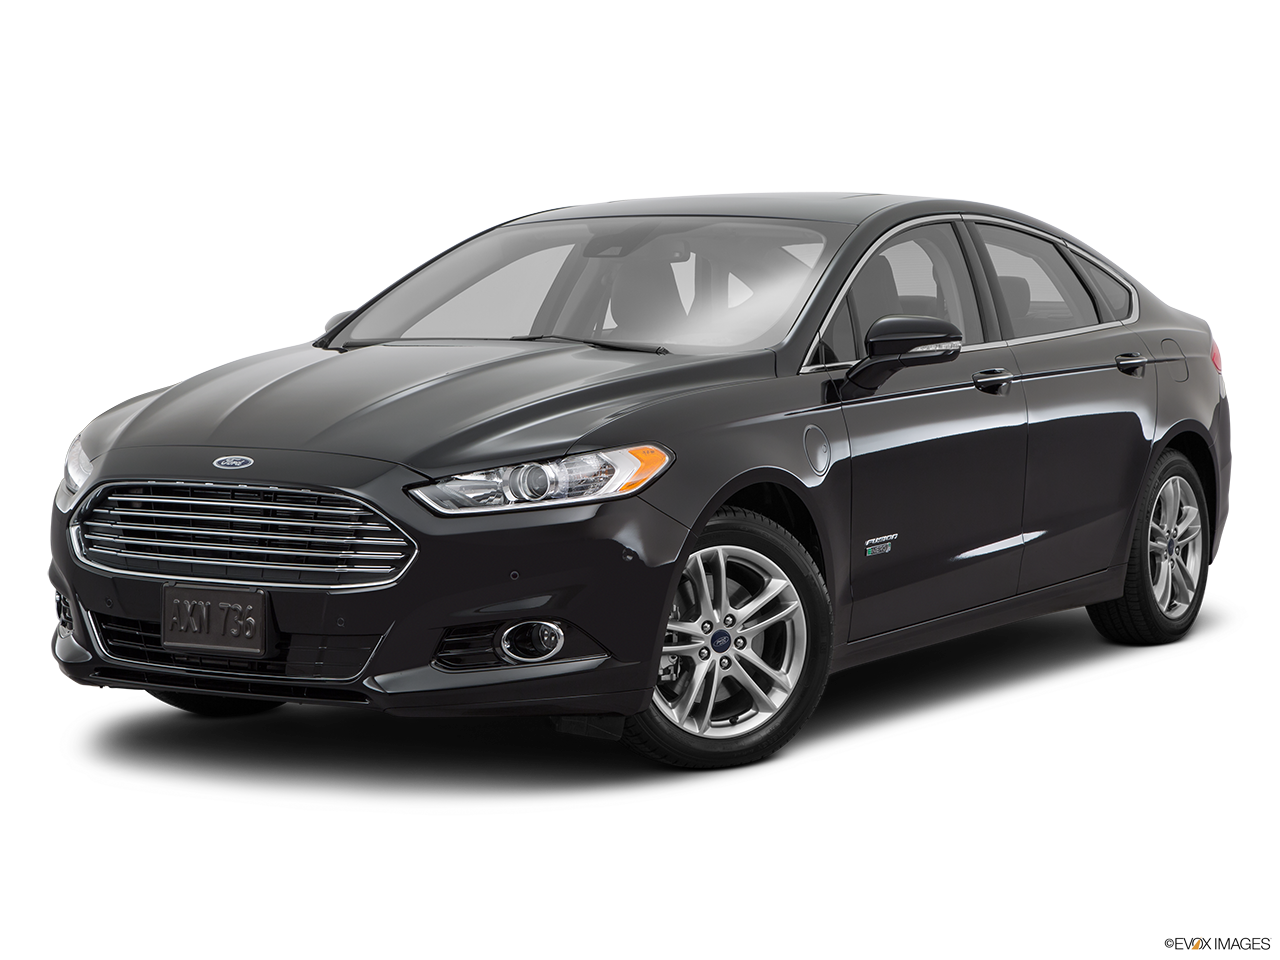 2016 ford fusion png. Near van nuys